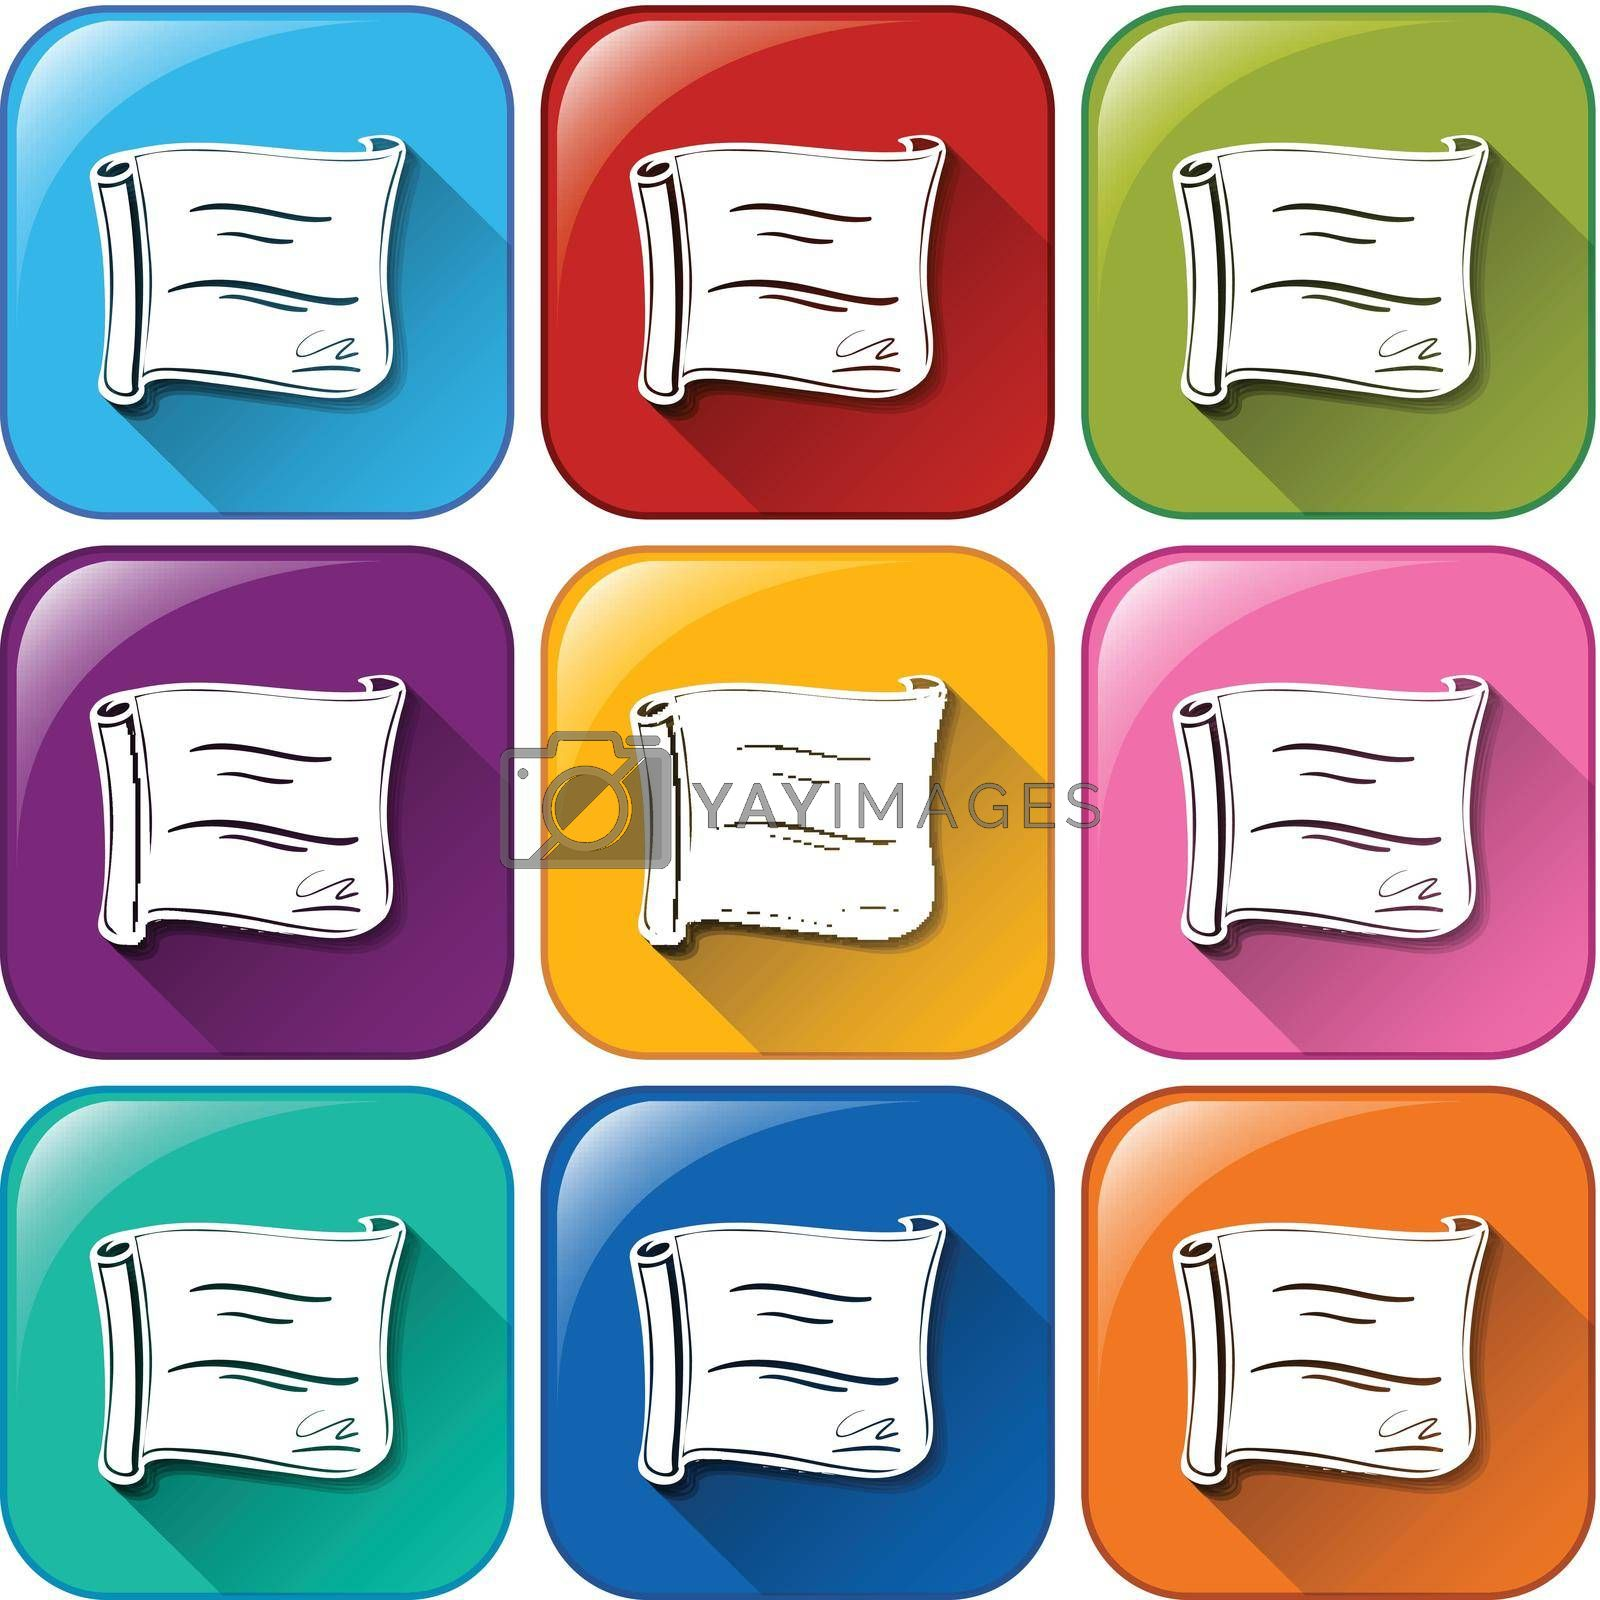 Royalty free image of Rounded buttons with certificates by iimages